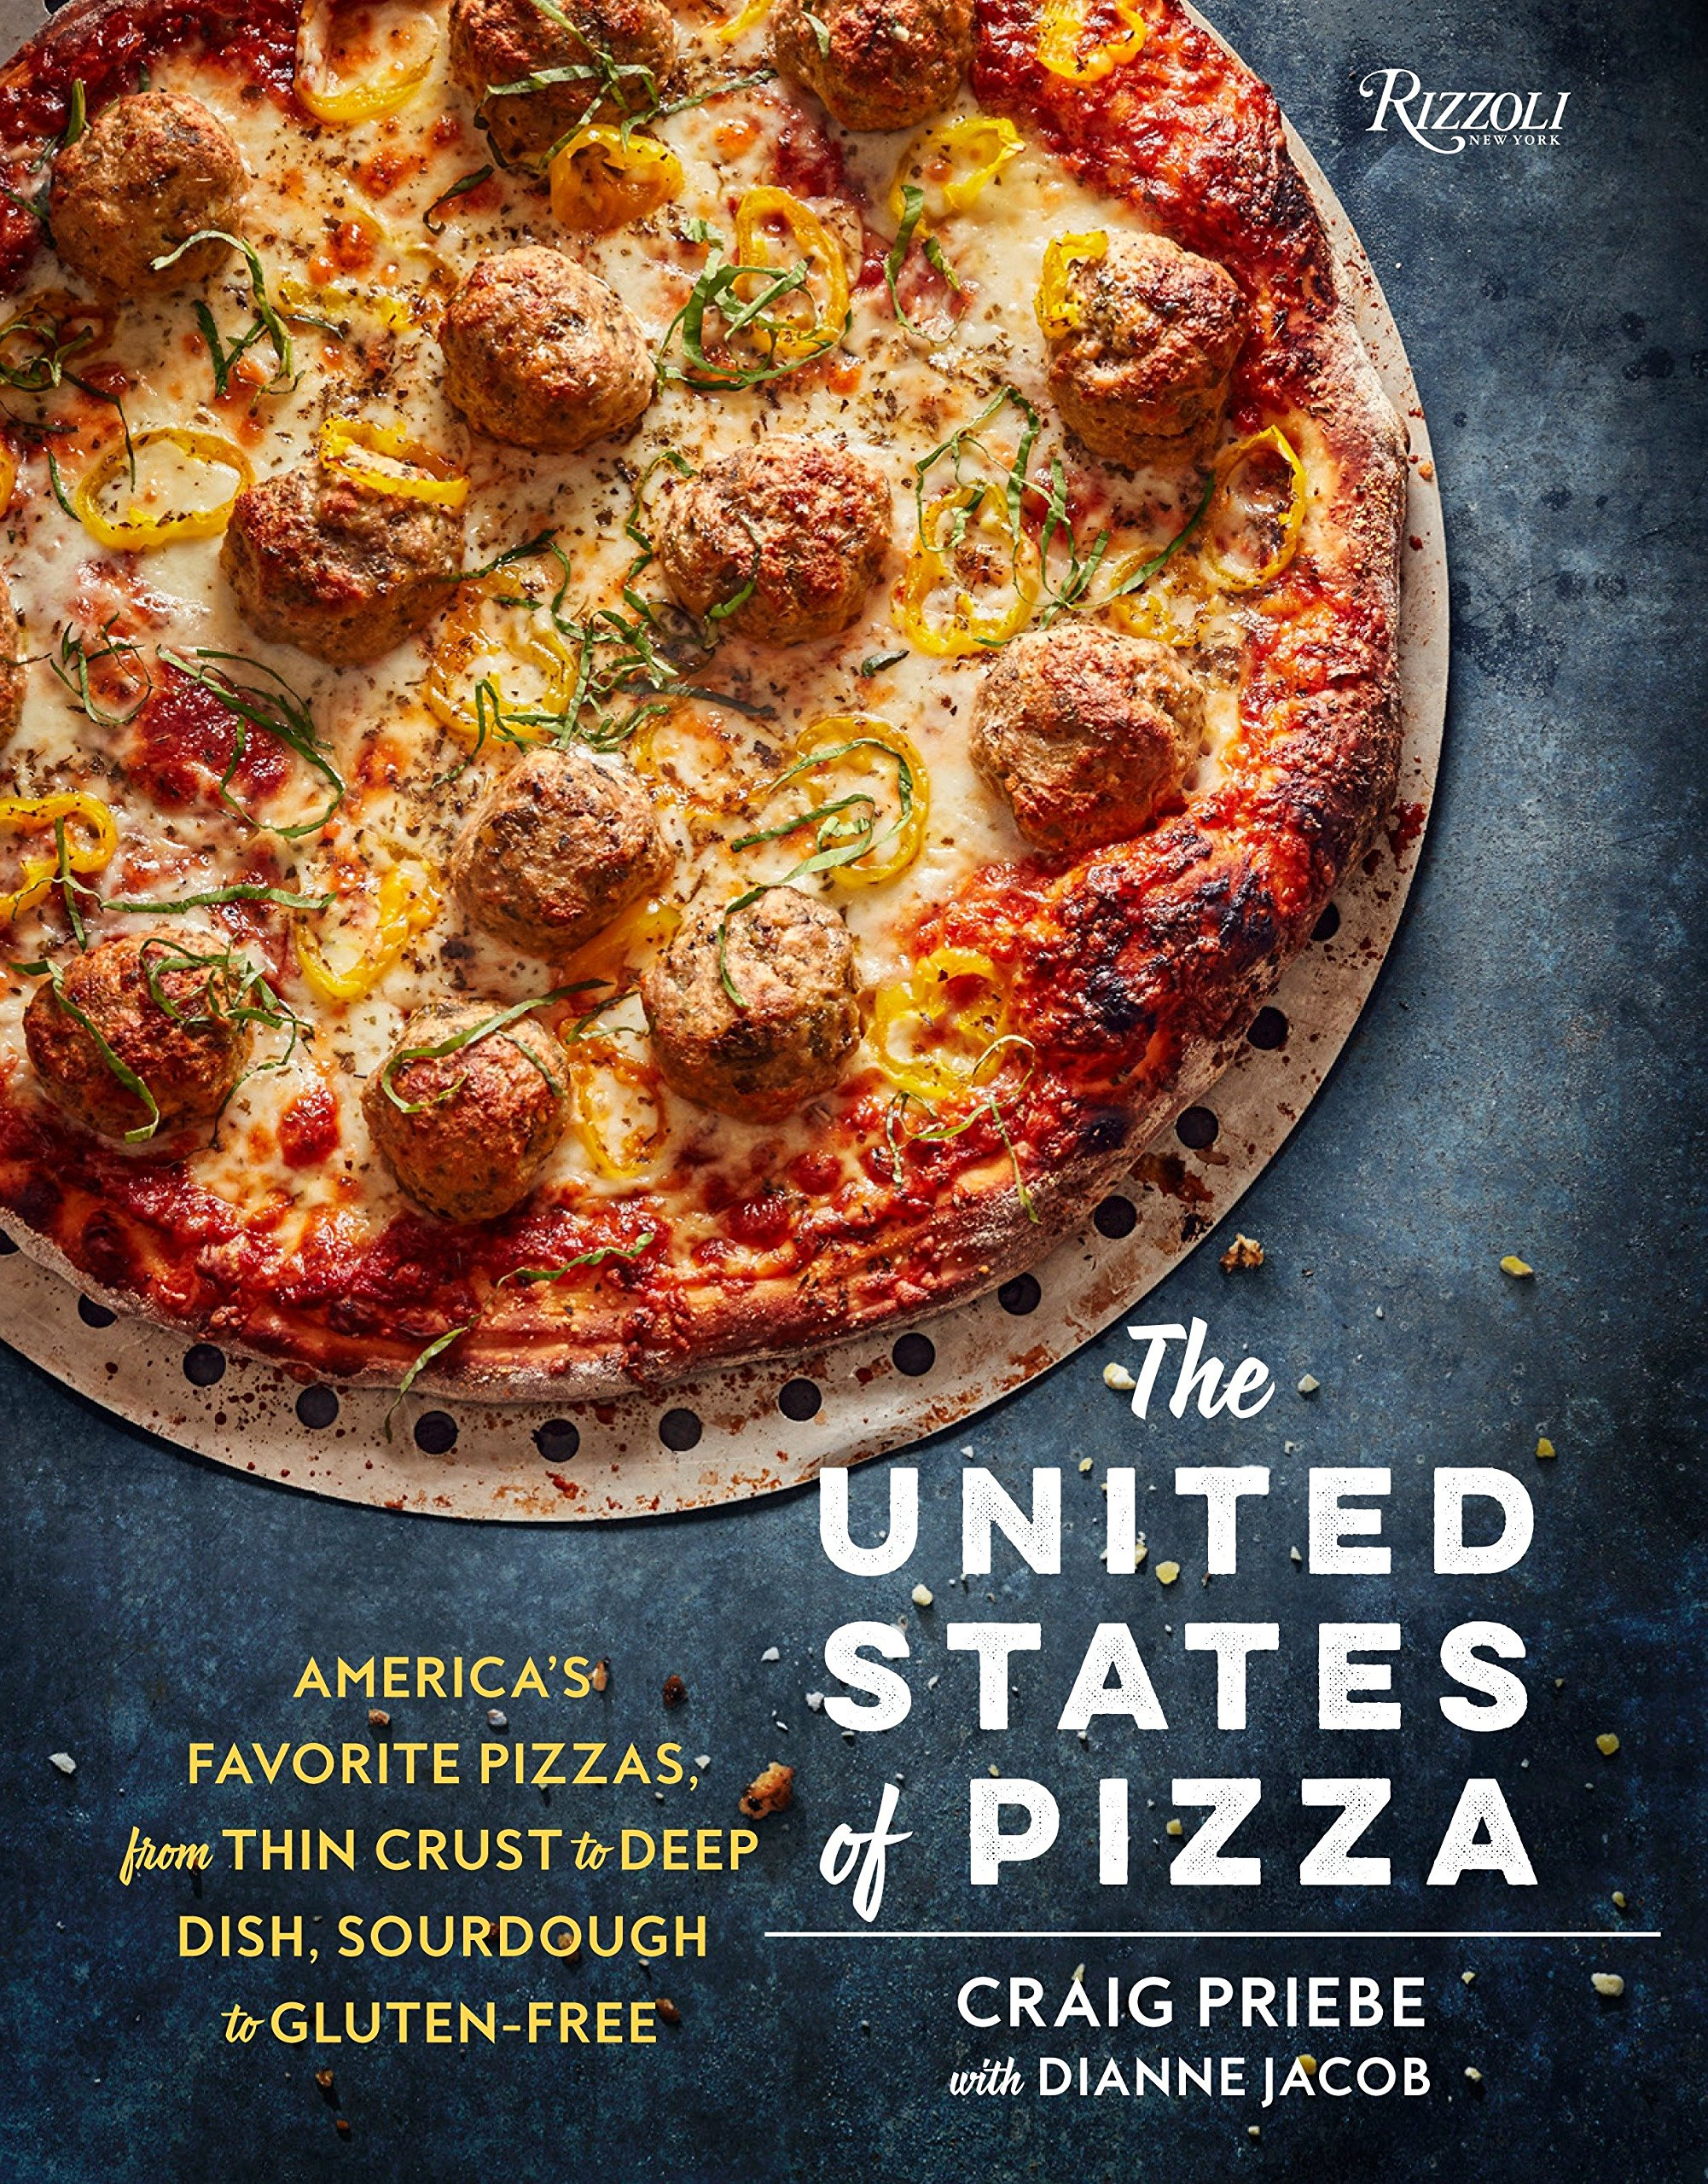 The United States of Pizza: America's Favorite Pizzas, From Thin Crust to Deep Dish, Sourdough to Gluten-Free by RIZZOLI